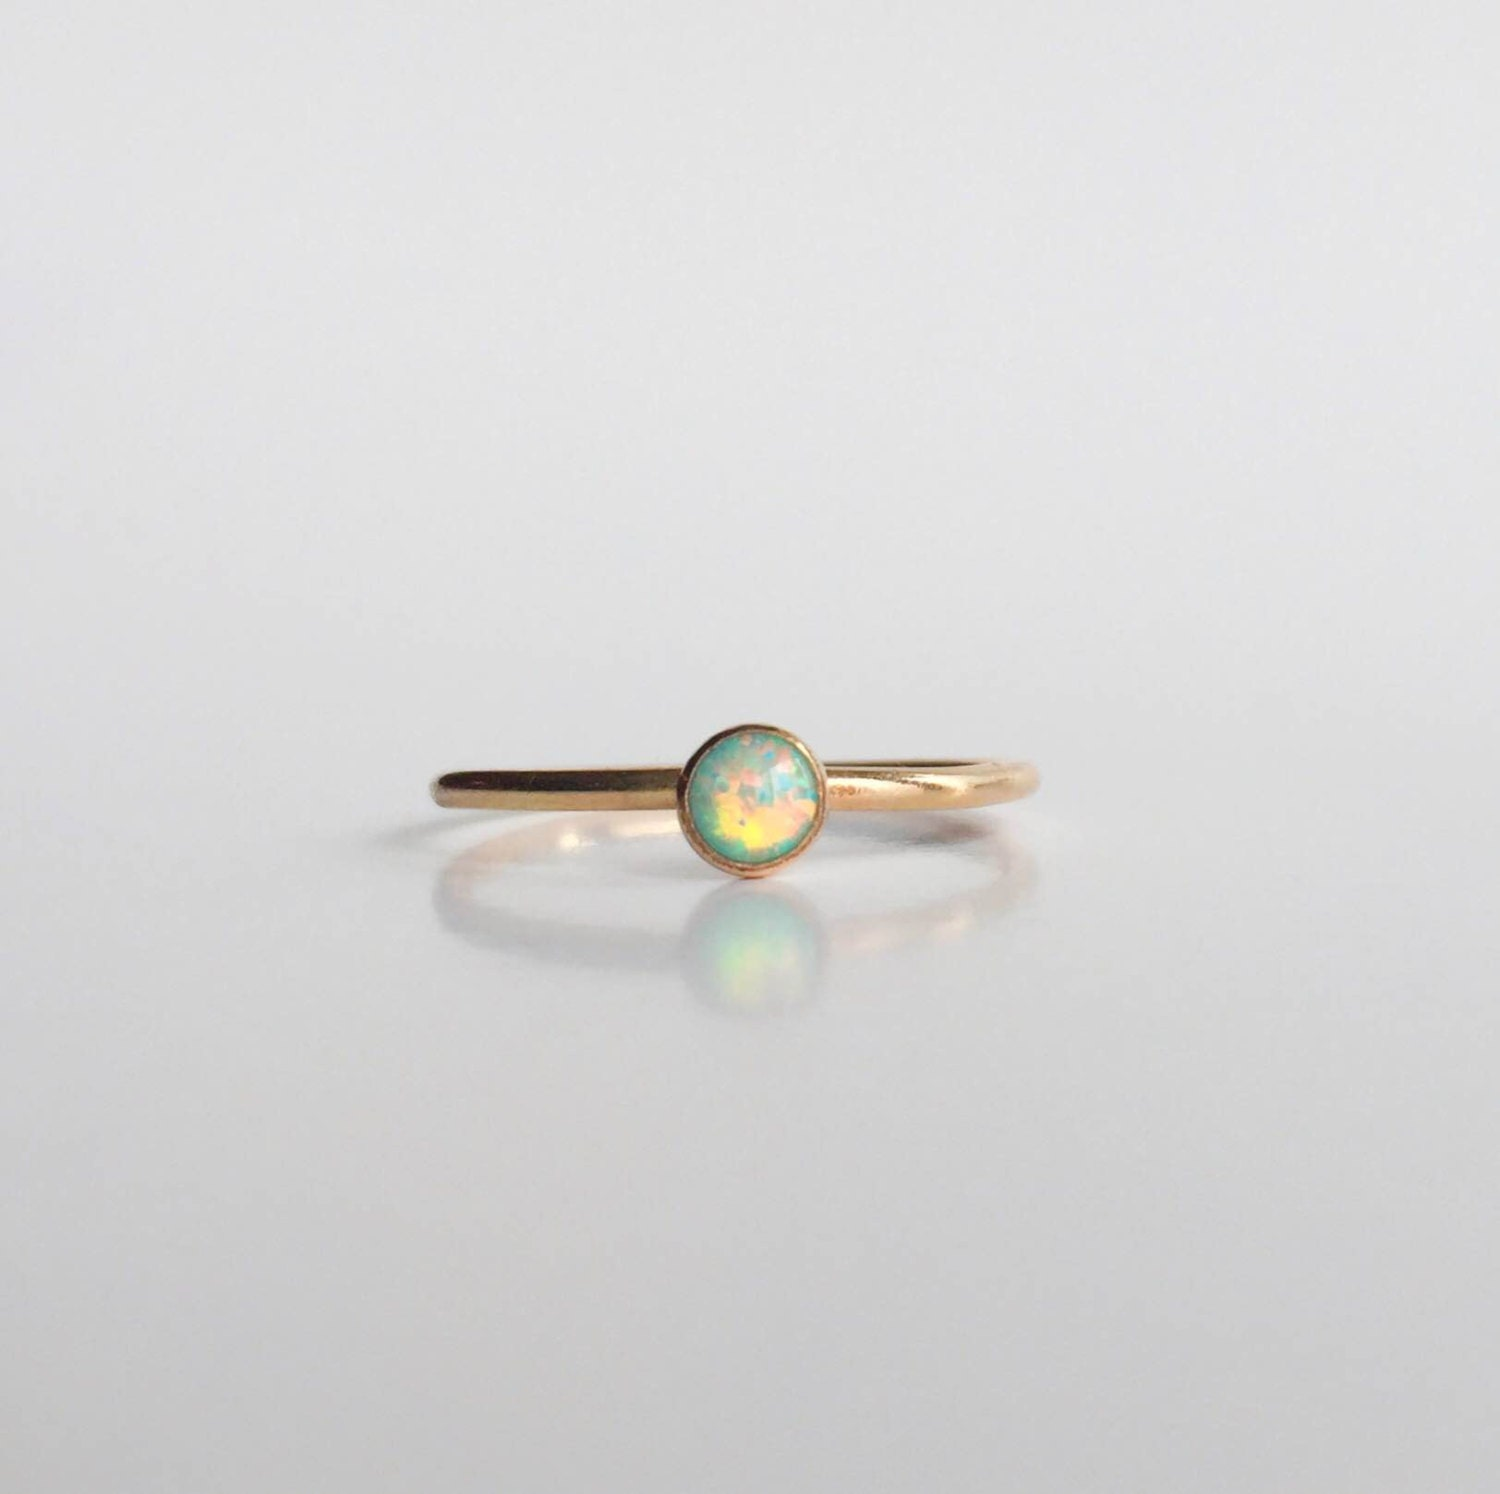 Moon Teal Opal Gold Filled Ring - Round